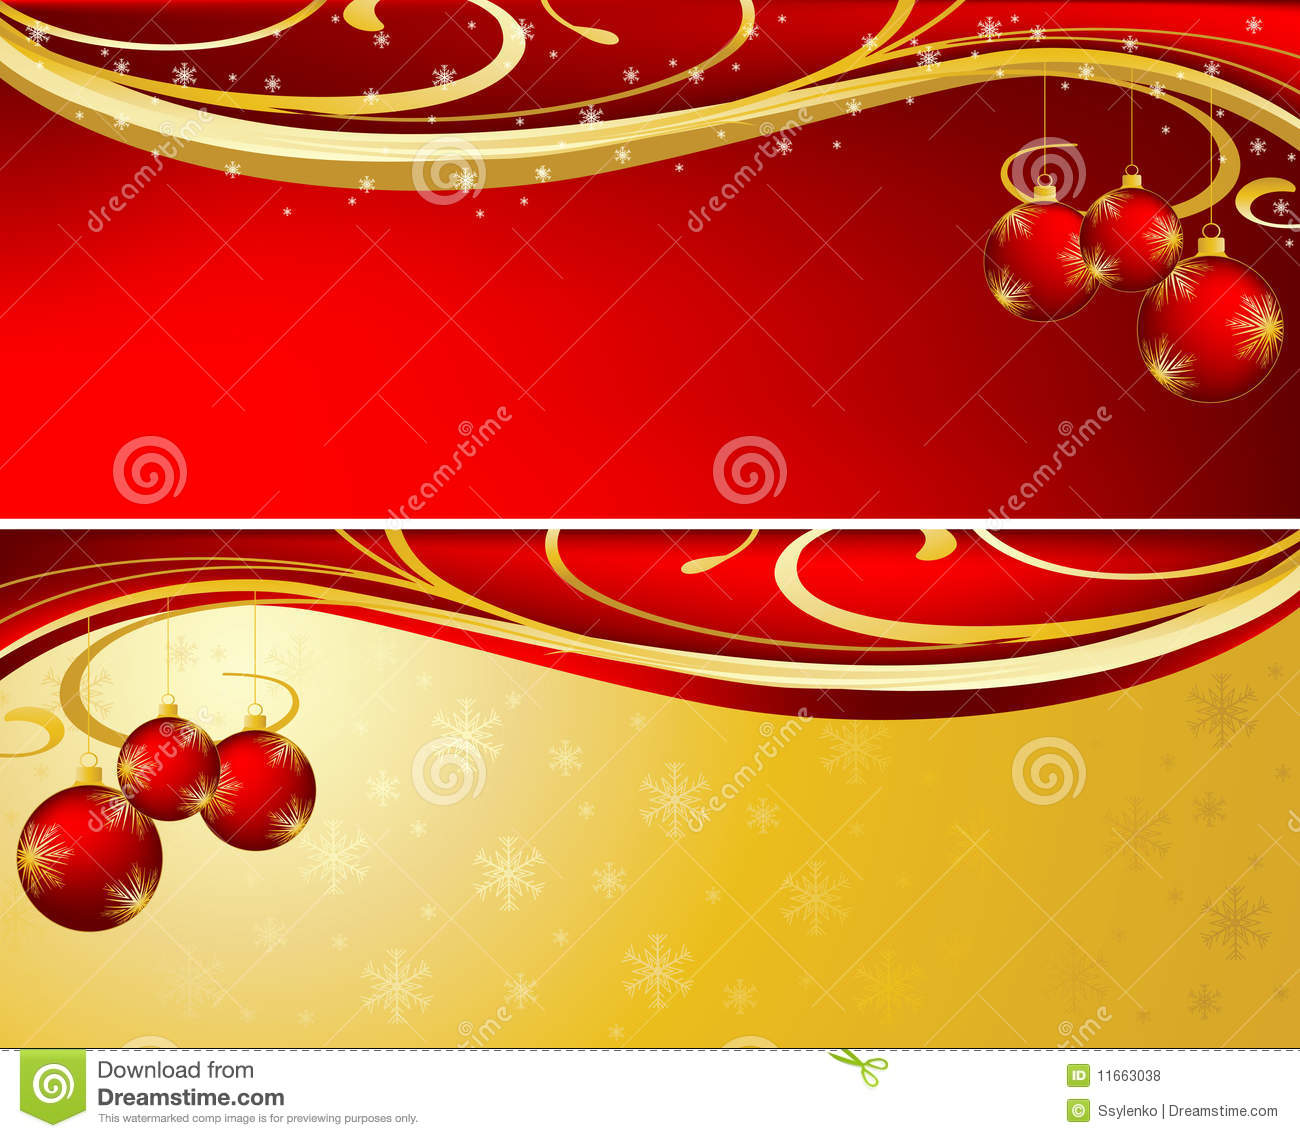 christmas background red and gold stock vector illustration of